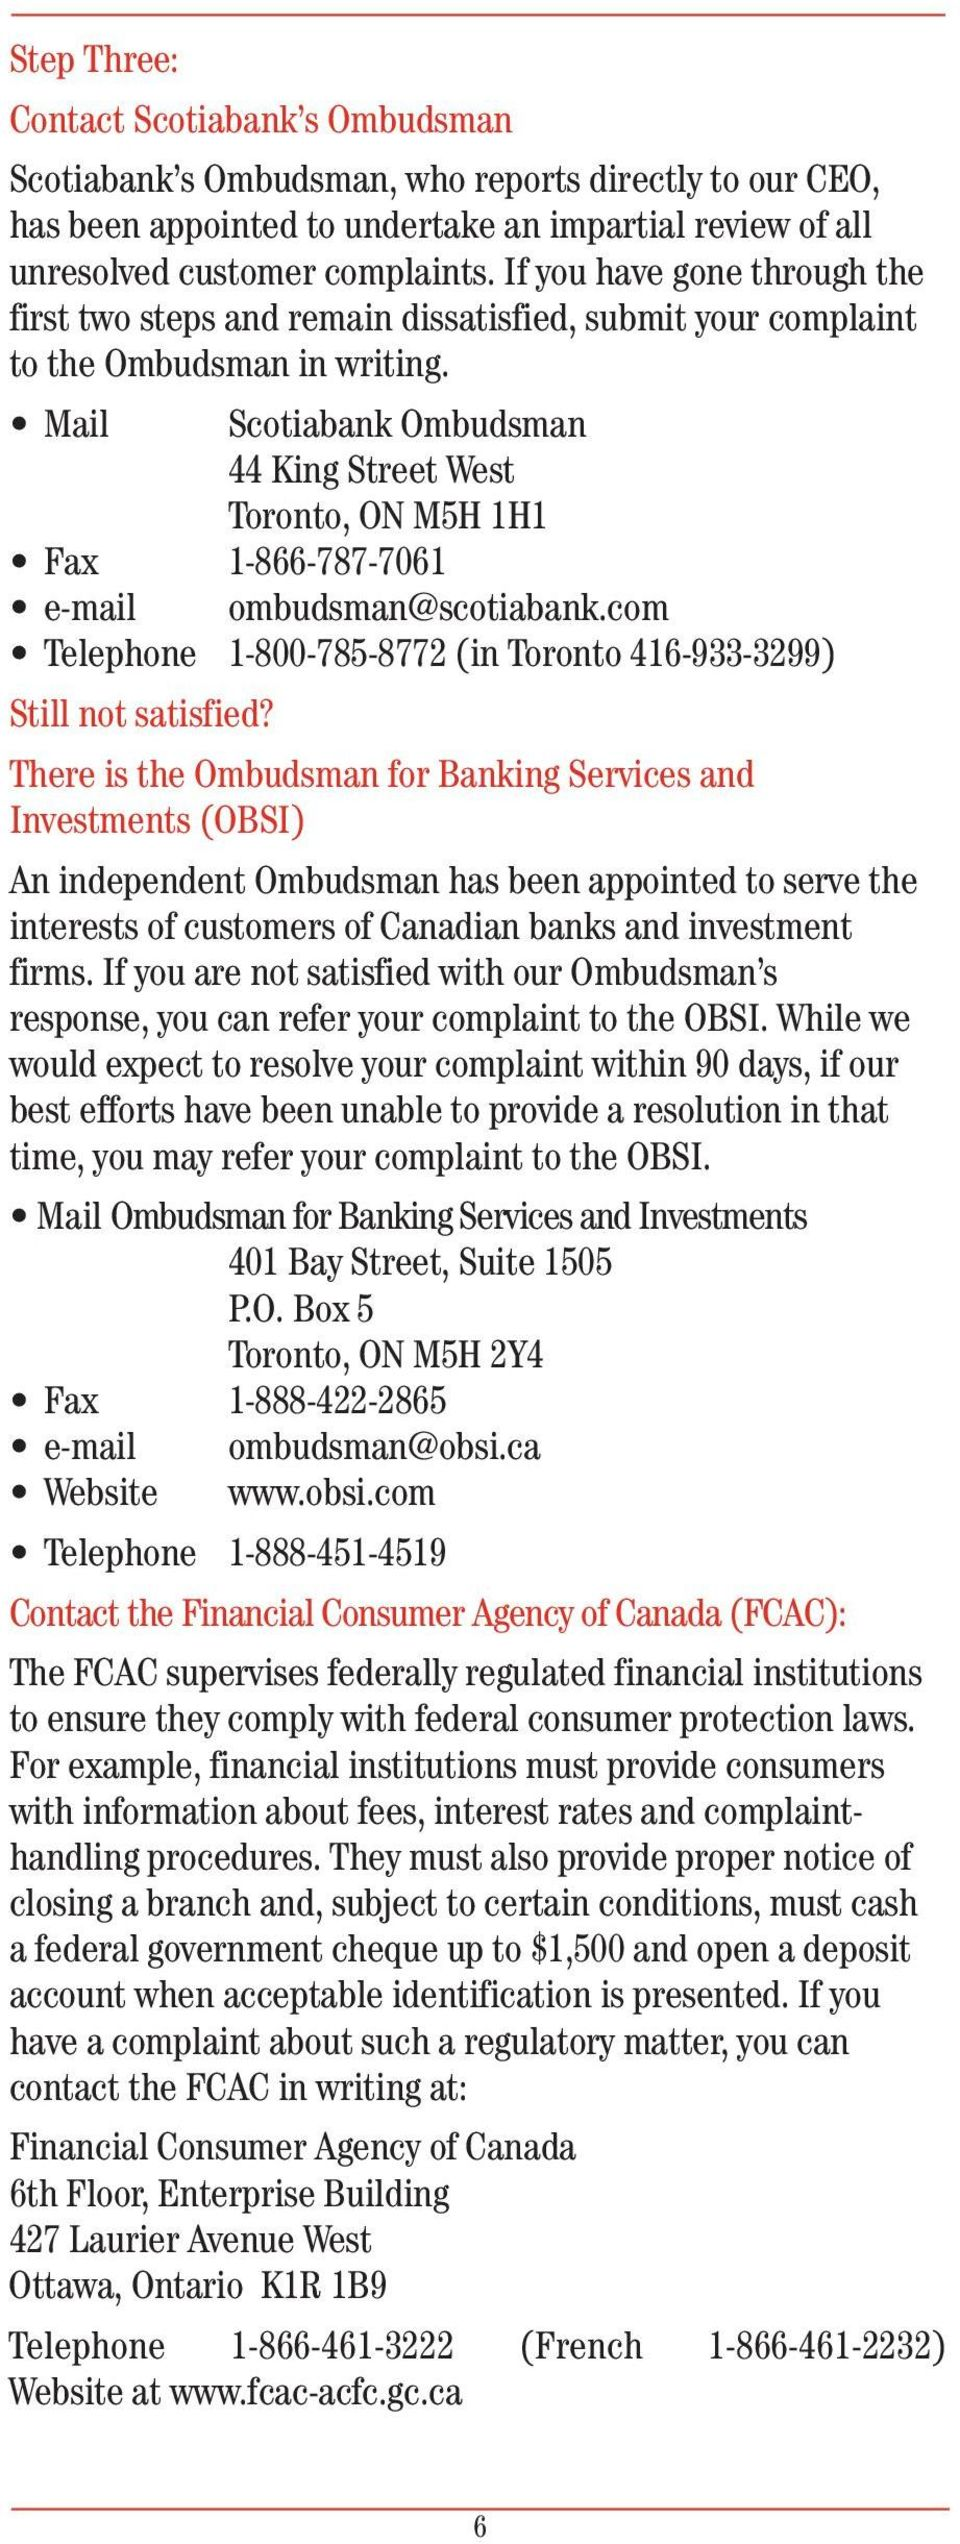 Mail Scotiabank Ombudsman 44 King Street West Toronto, ON M5H 1H1 Fax 1-866-787-7061 e-mail ombudsman@scotiabank.com Telephone 1-800-785-8772 (in Toronto 416-933-3299) Still not satisfied?